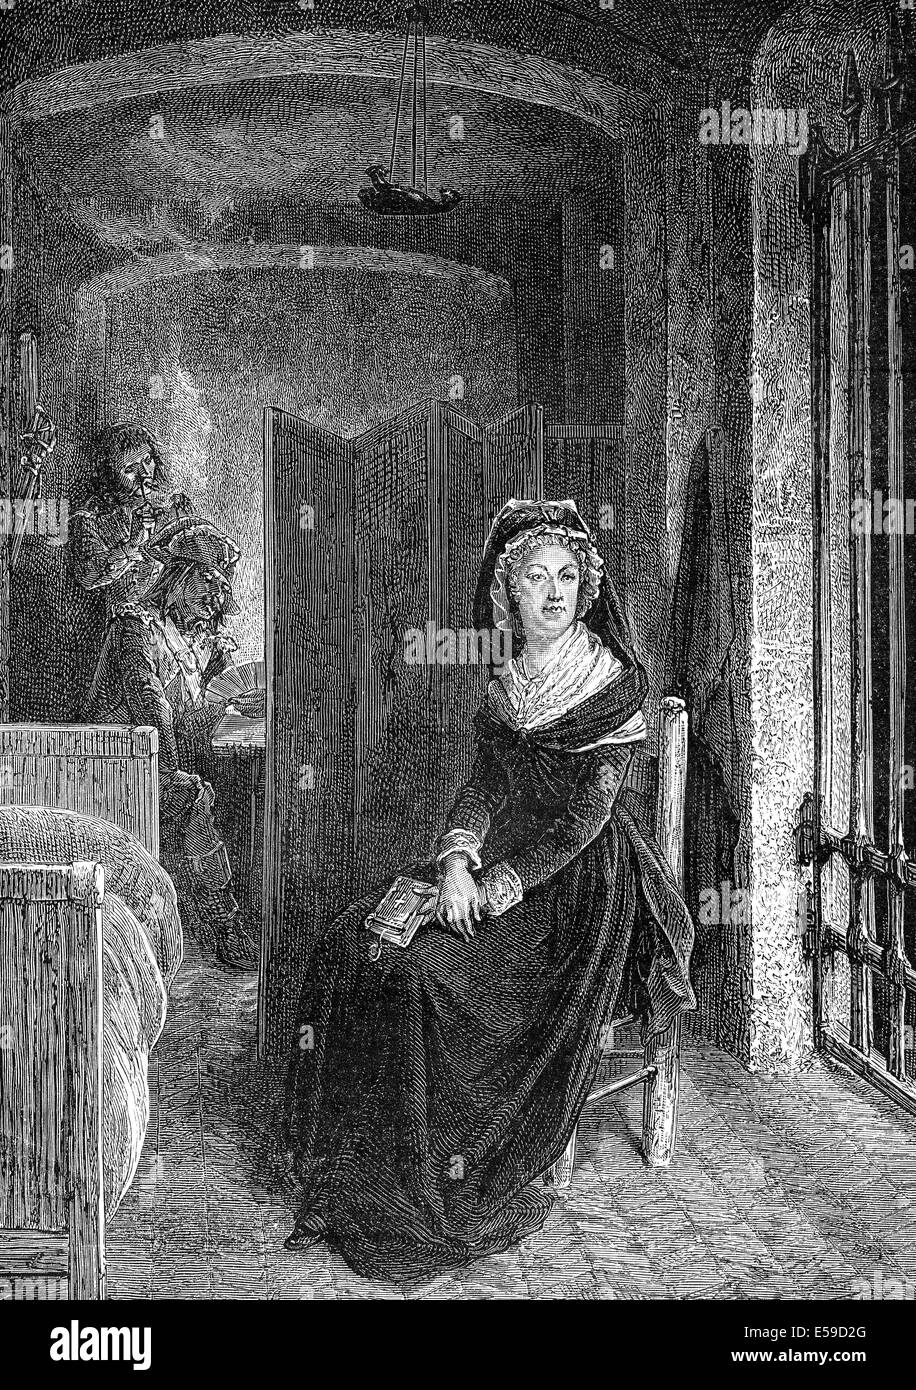 Marie Antoinette, Maria Antonia Josepha or Josephina Johanna, 1755 - 1793, Queen of France and Navarre, in a prison - Stock Image